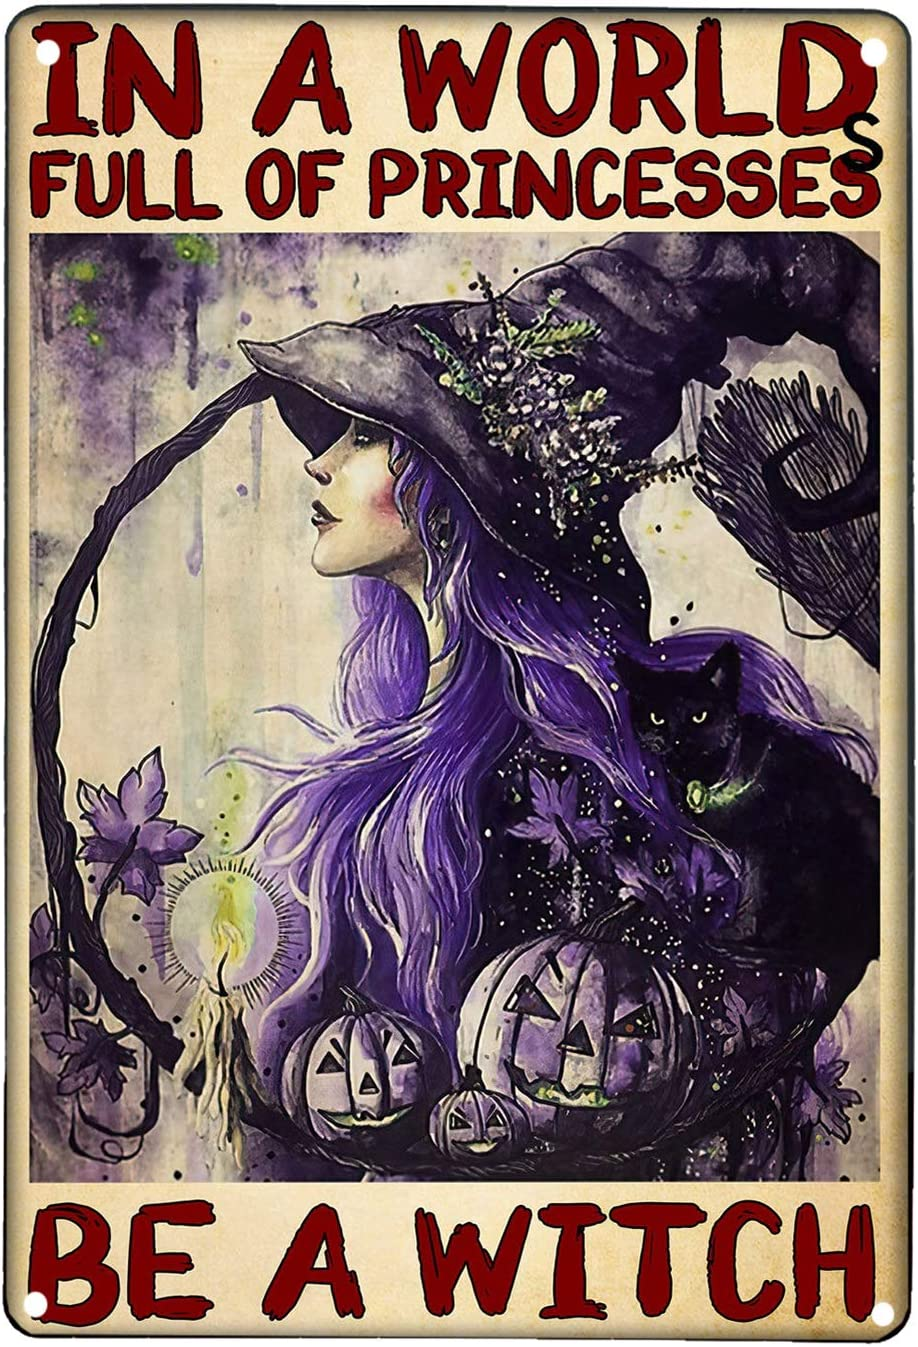 Pozino Witch Room Decor Aesthetic Witch Witchcraft Sign Girl in A World Full of Princesses Be A Witch Halloween Living Decor Vintage Metal Signs for Kitchen